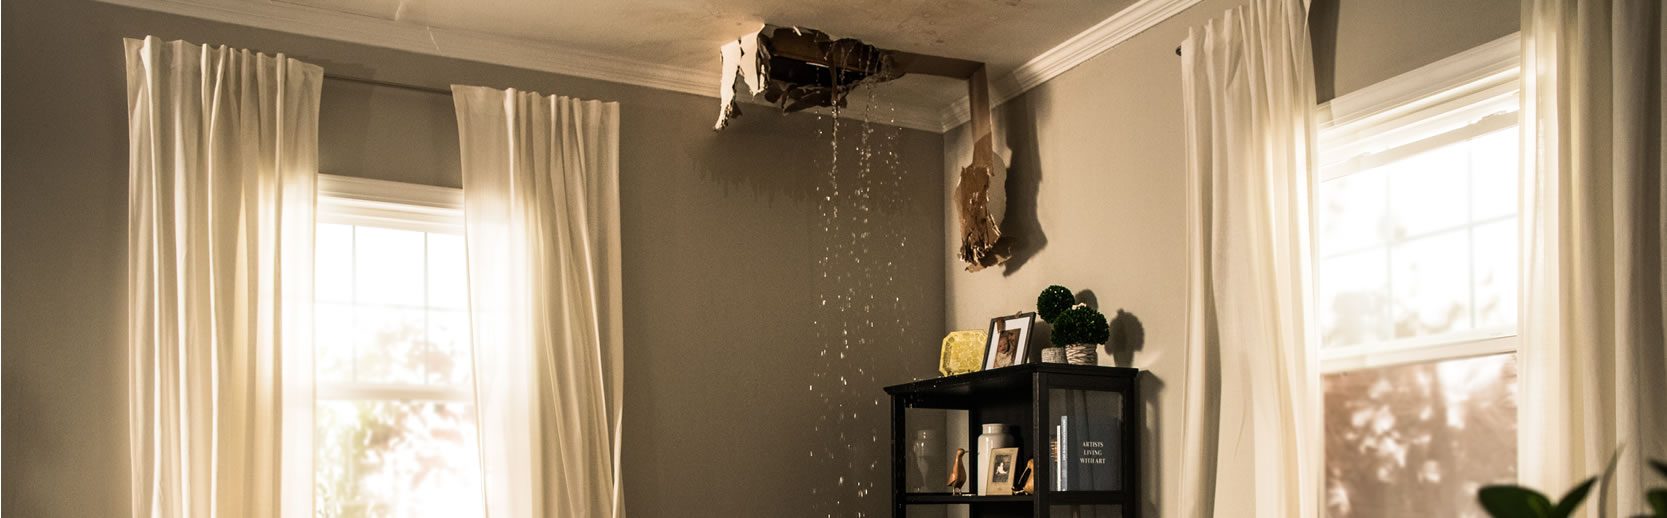 property managers emergency service vero beach